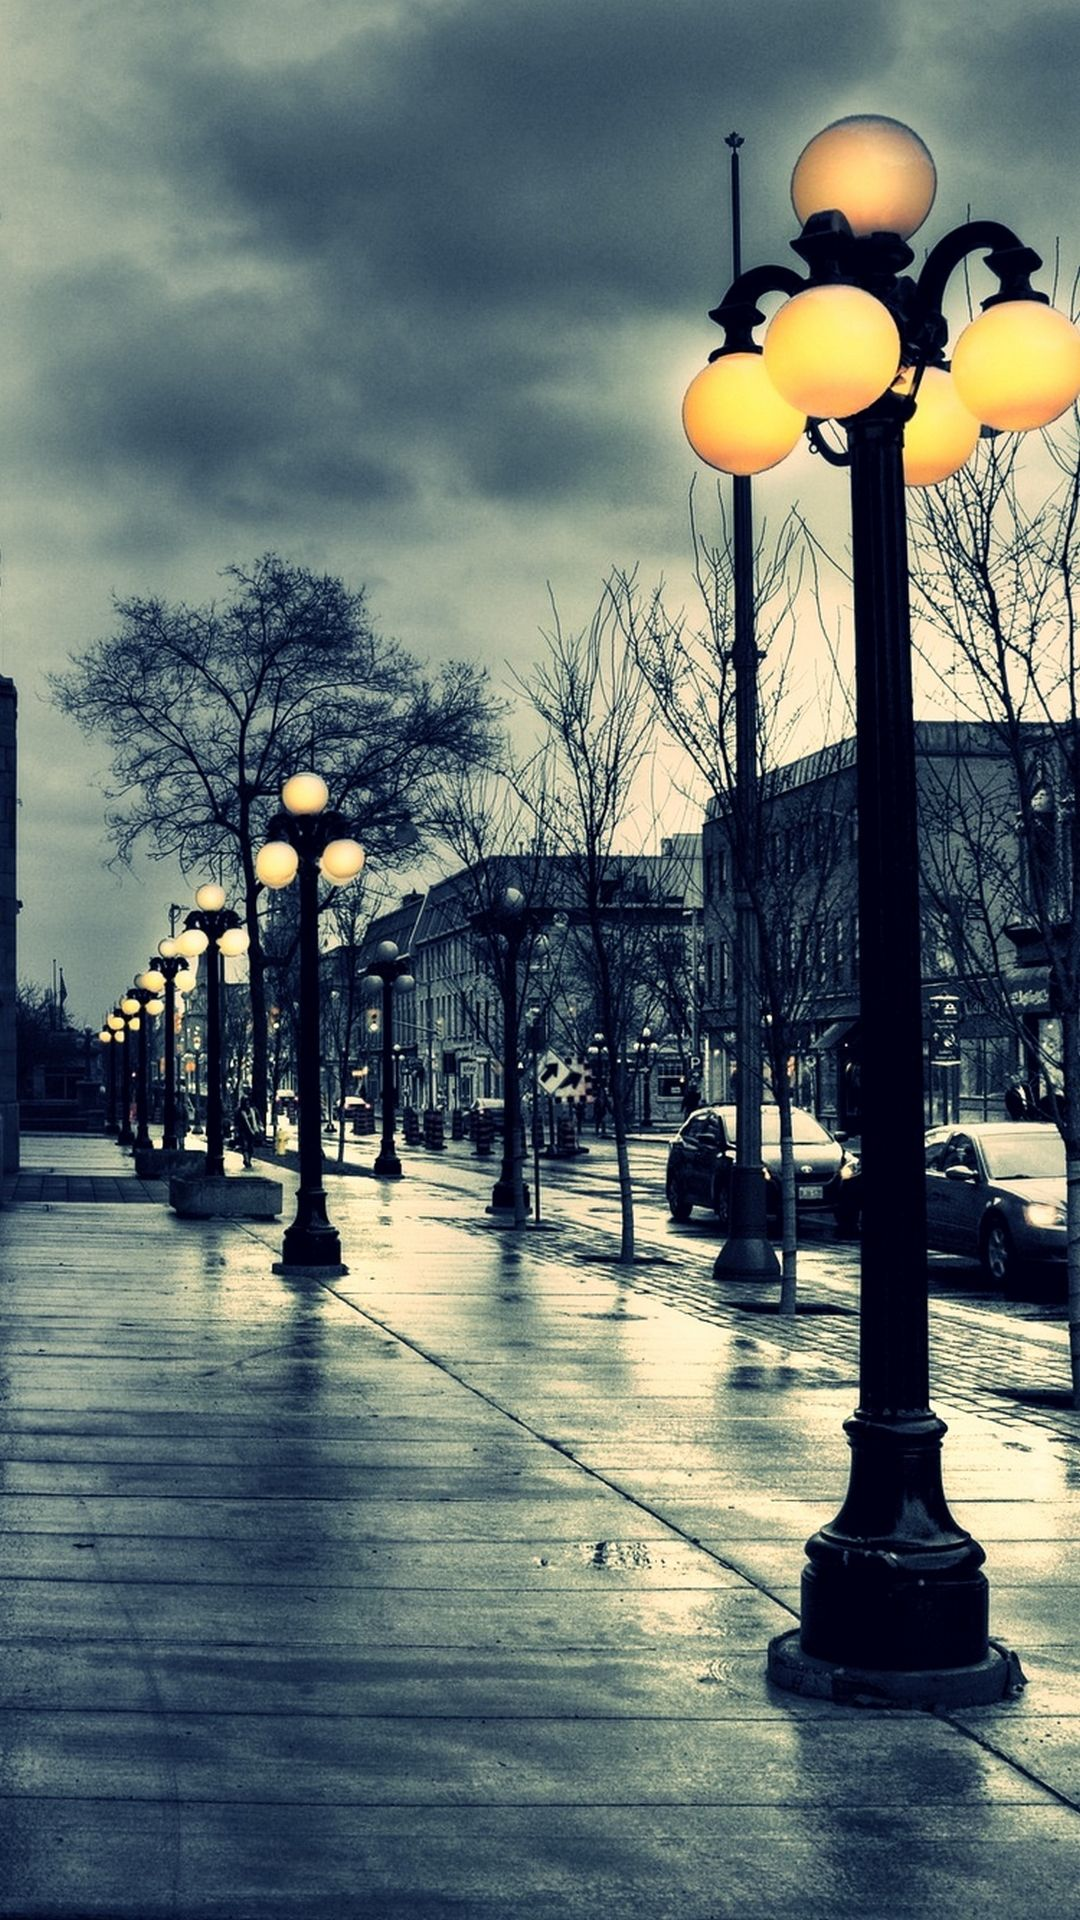 mobile hd wallpapers-down the street hd mobile wallpaper | http